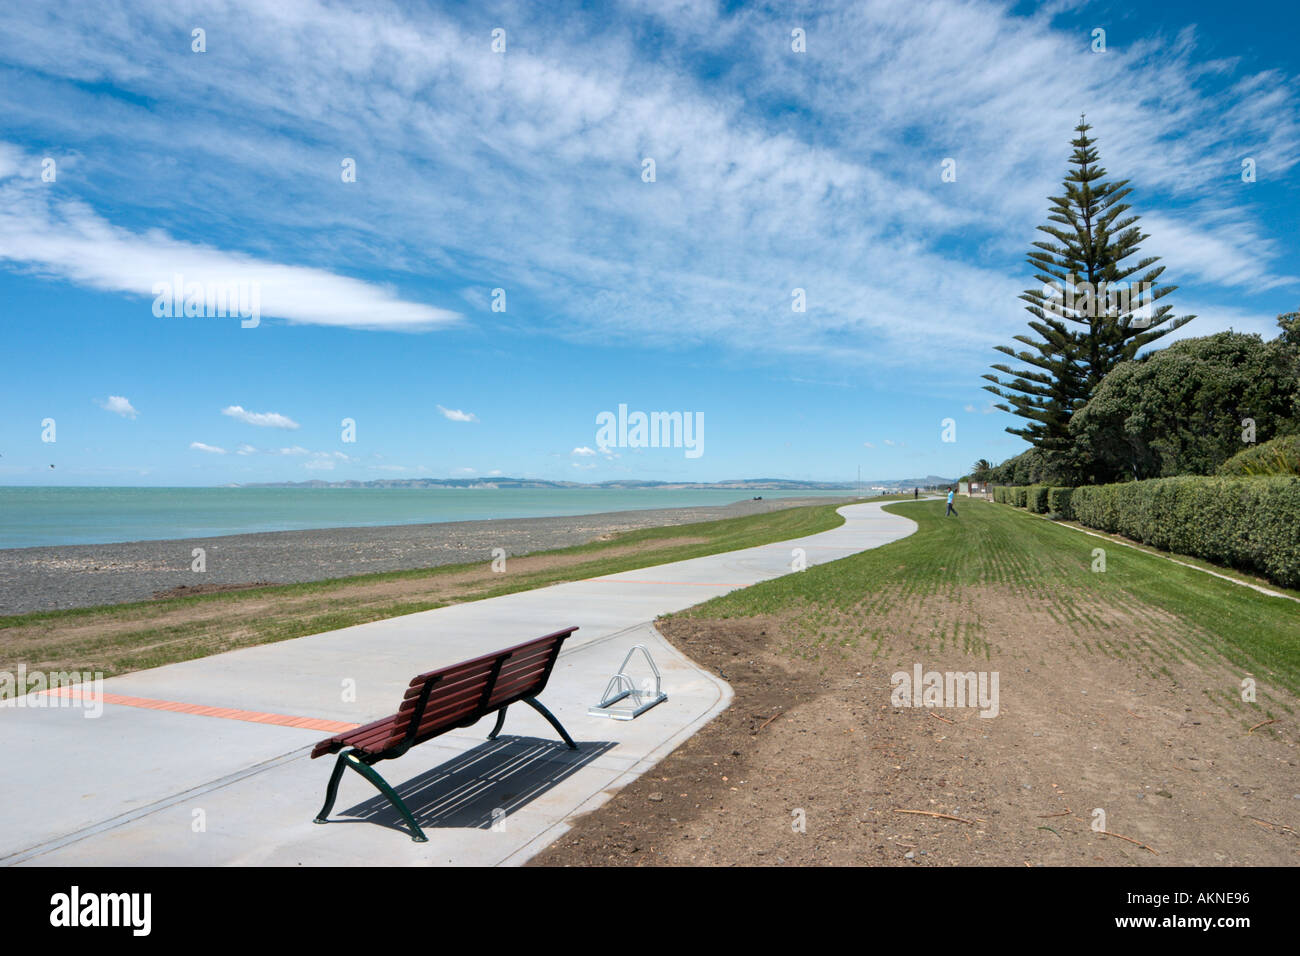 Seafront at Napier, North Island, New Zealand Stock Photo